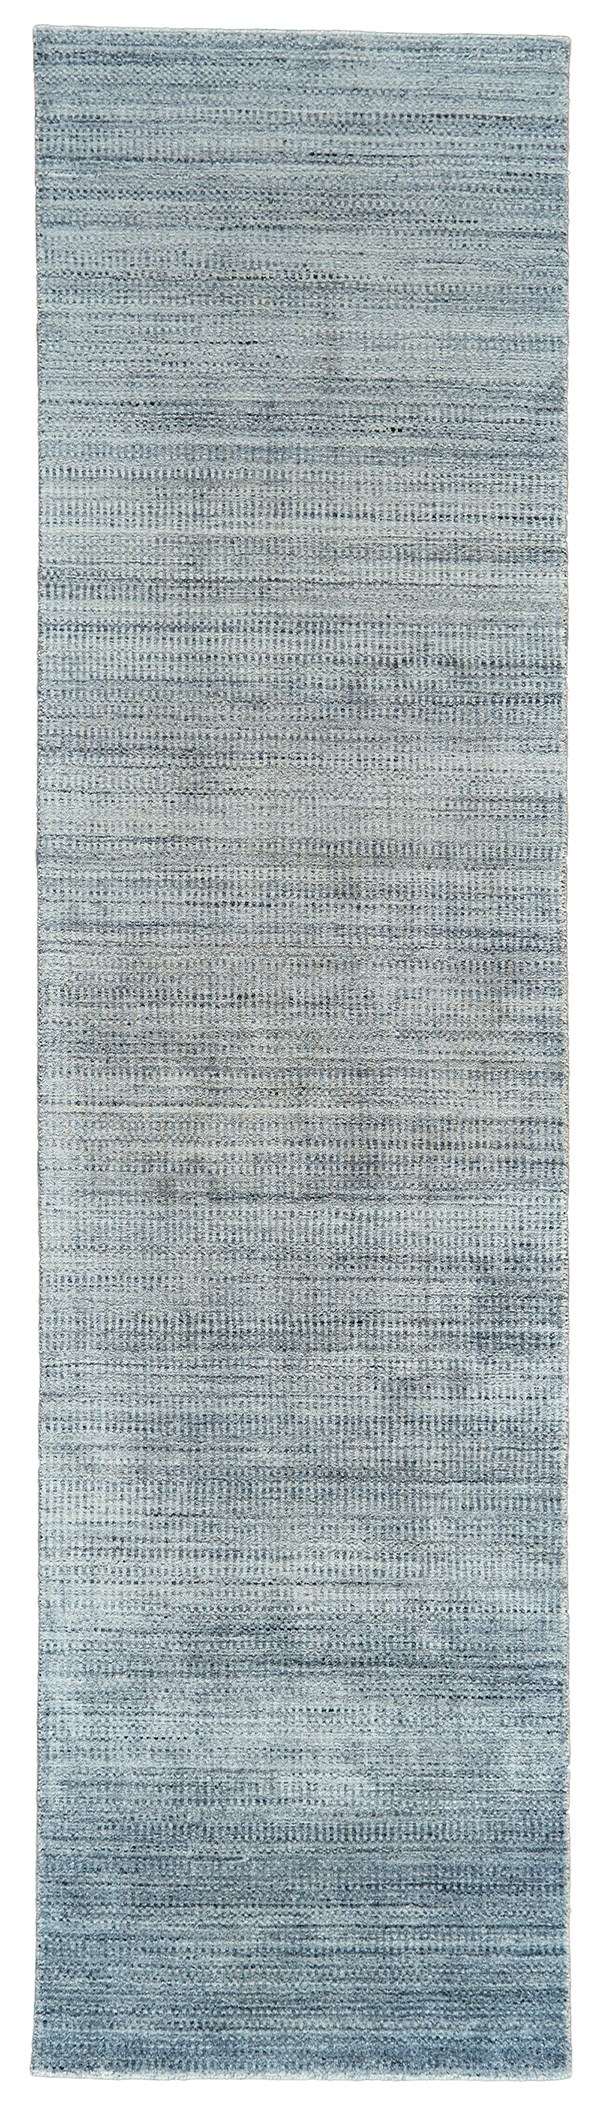 Gray, Haze Casual Area Rug